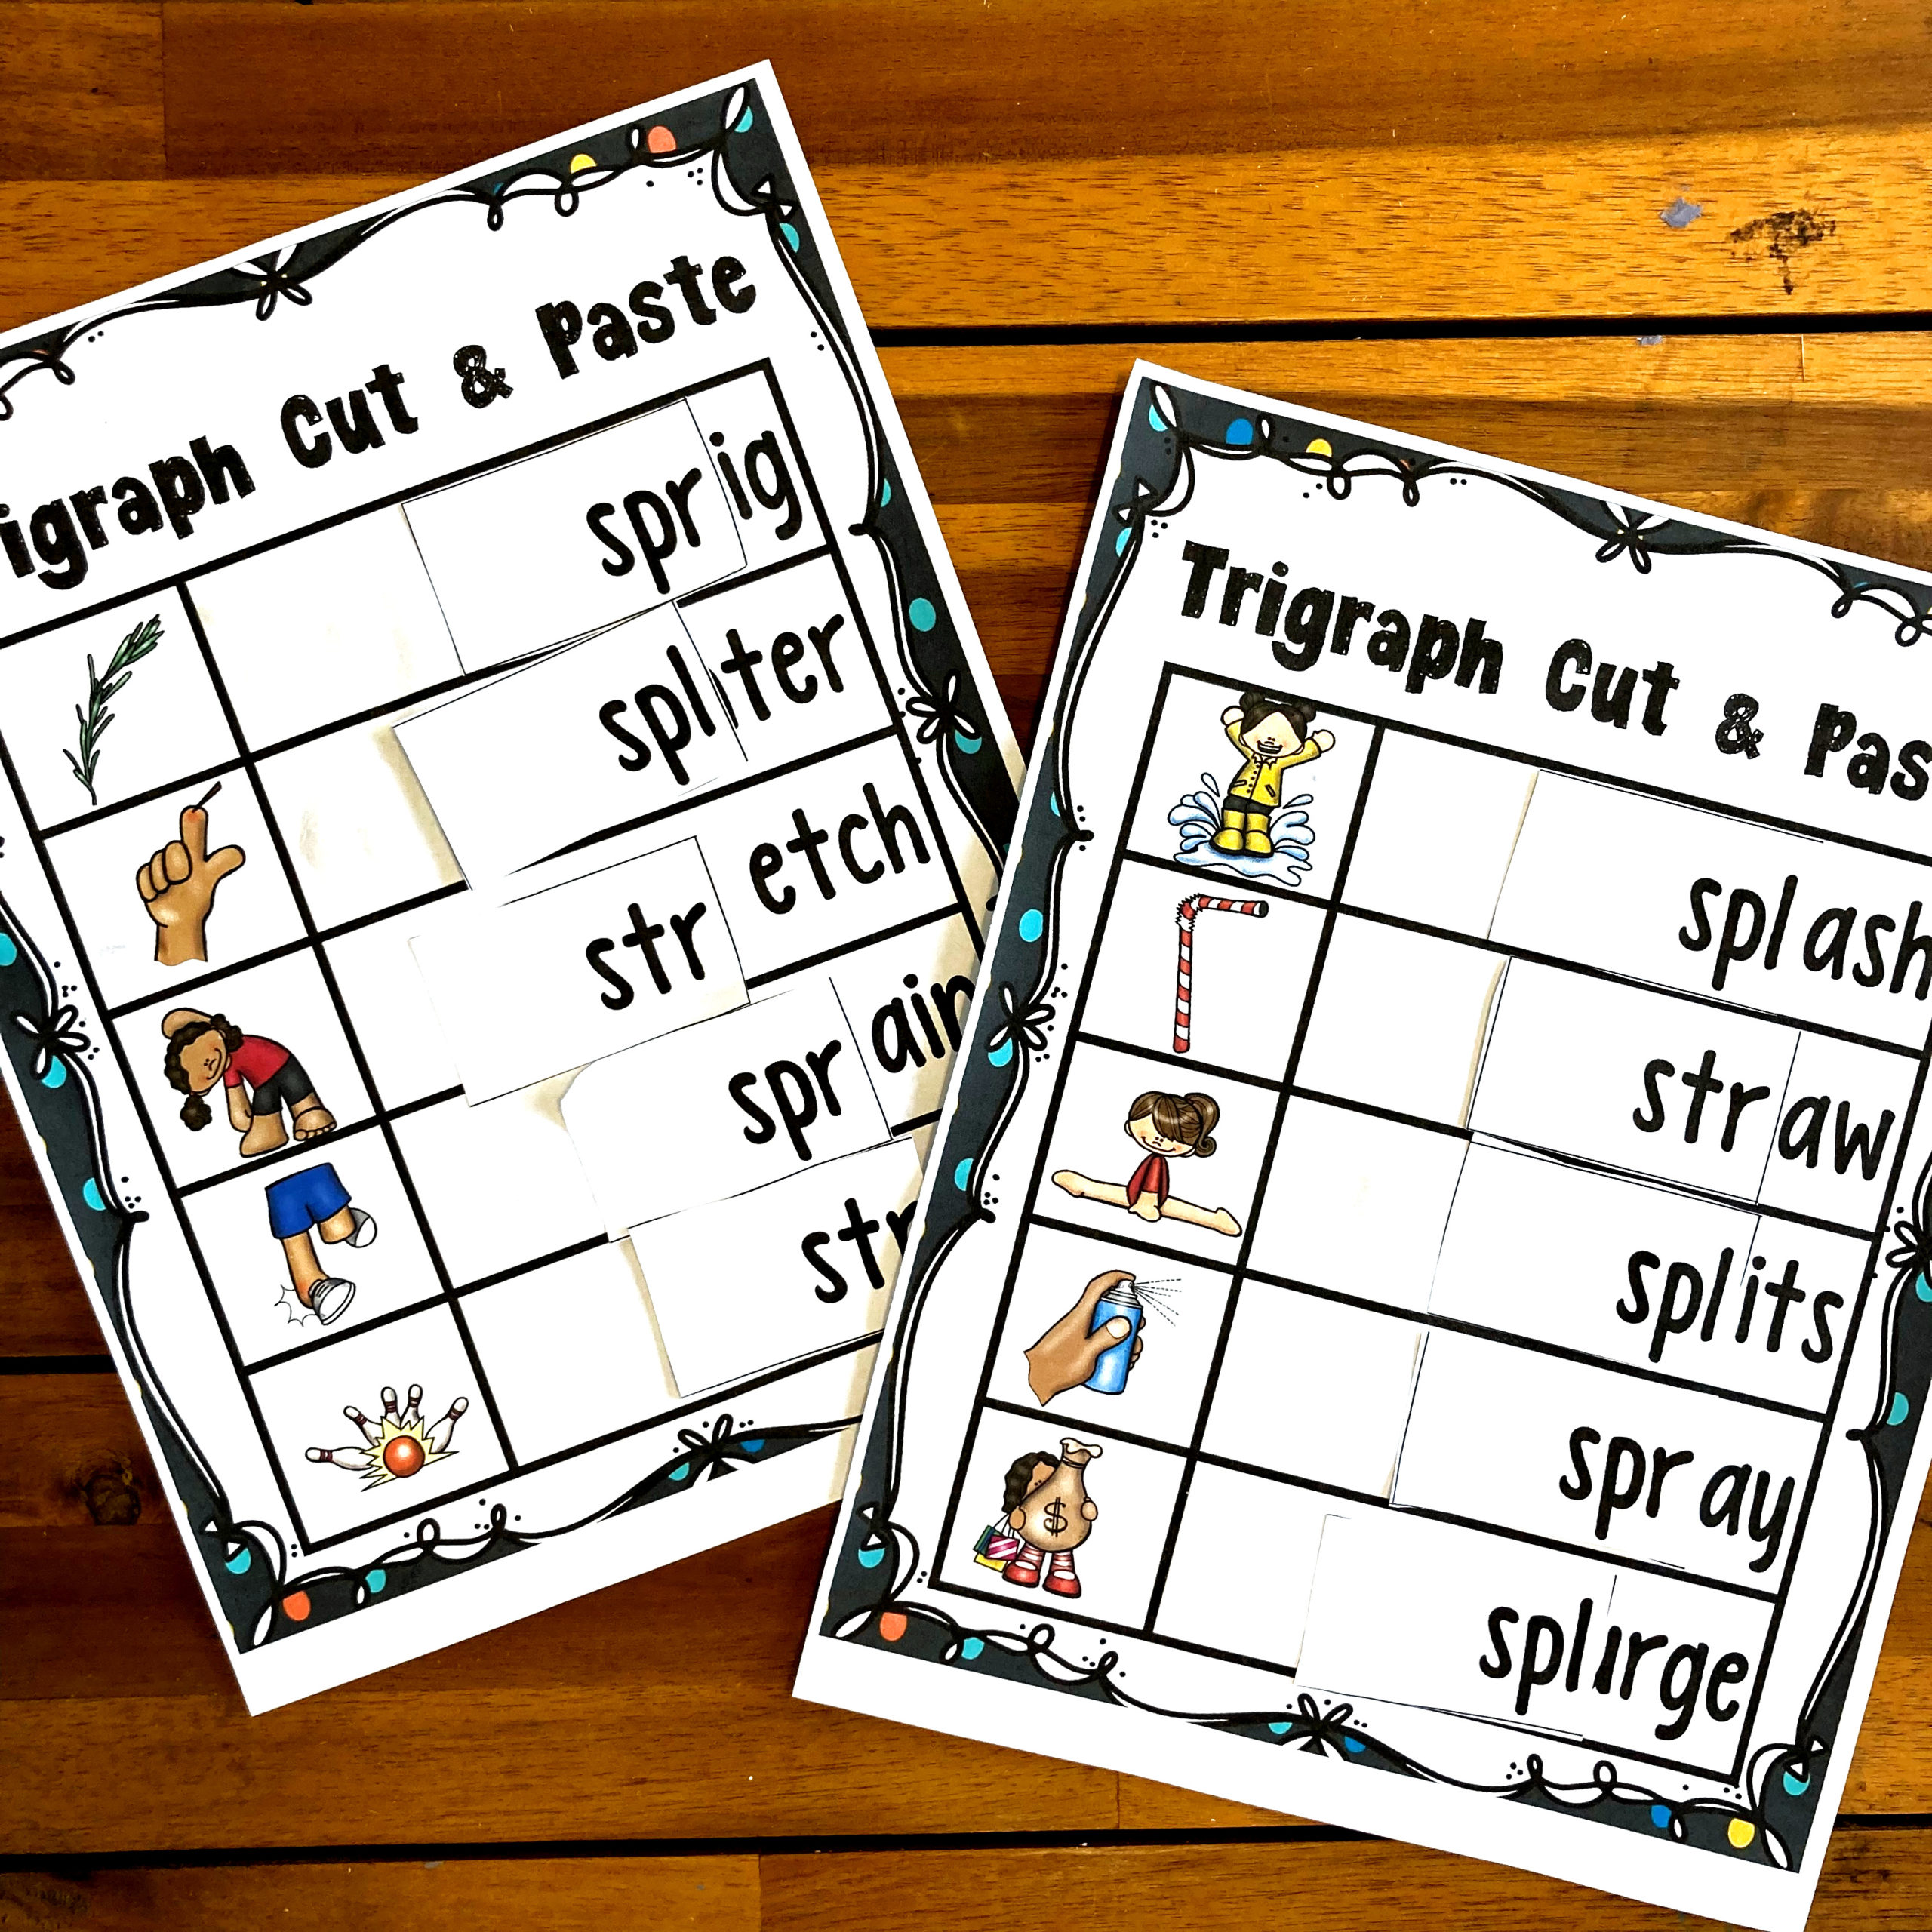 Free Trigraph Cut And Paste Worksheets